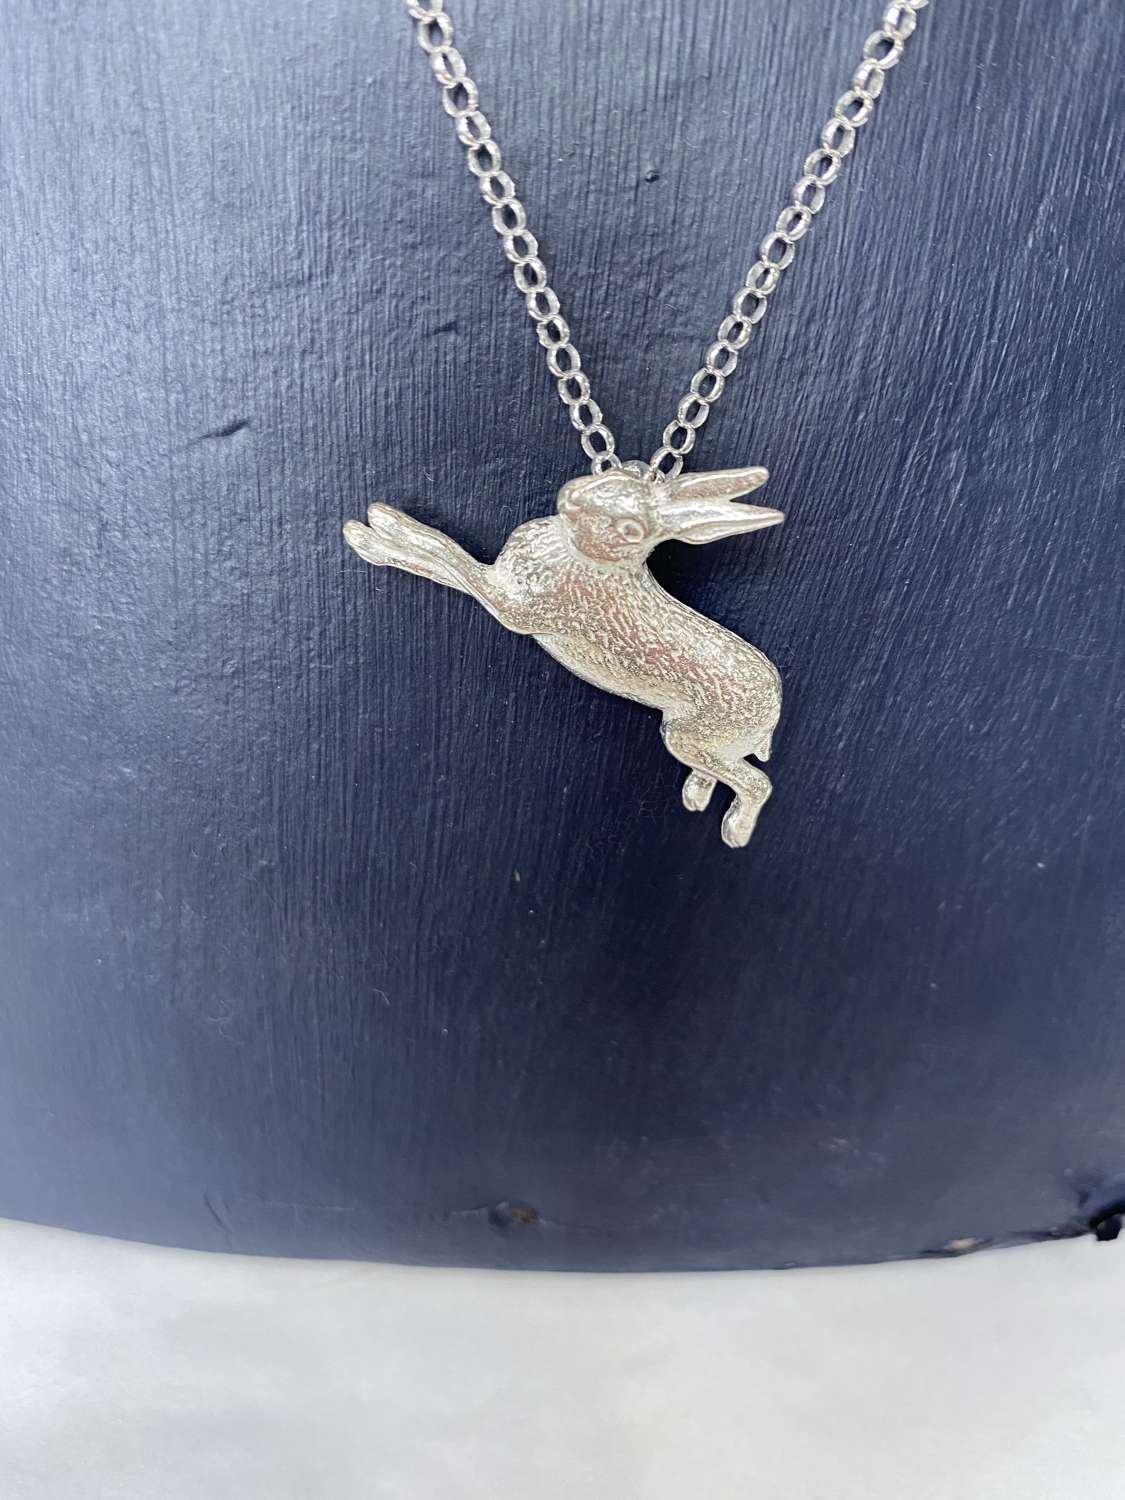 Stirling silver necklace - large leaping hare pendant